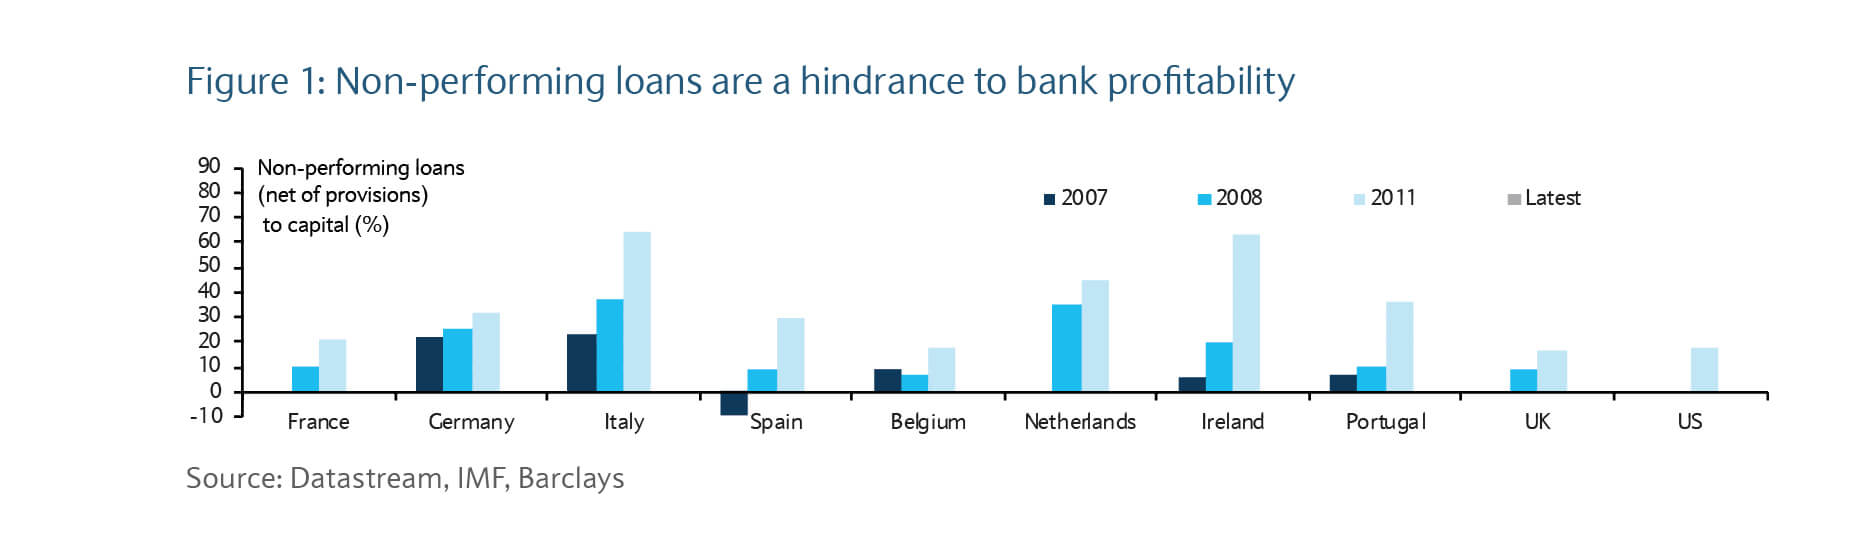 Non-performing loans are a hindrance to bank profitability